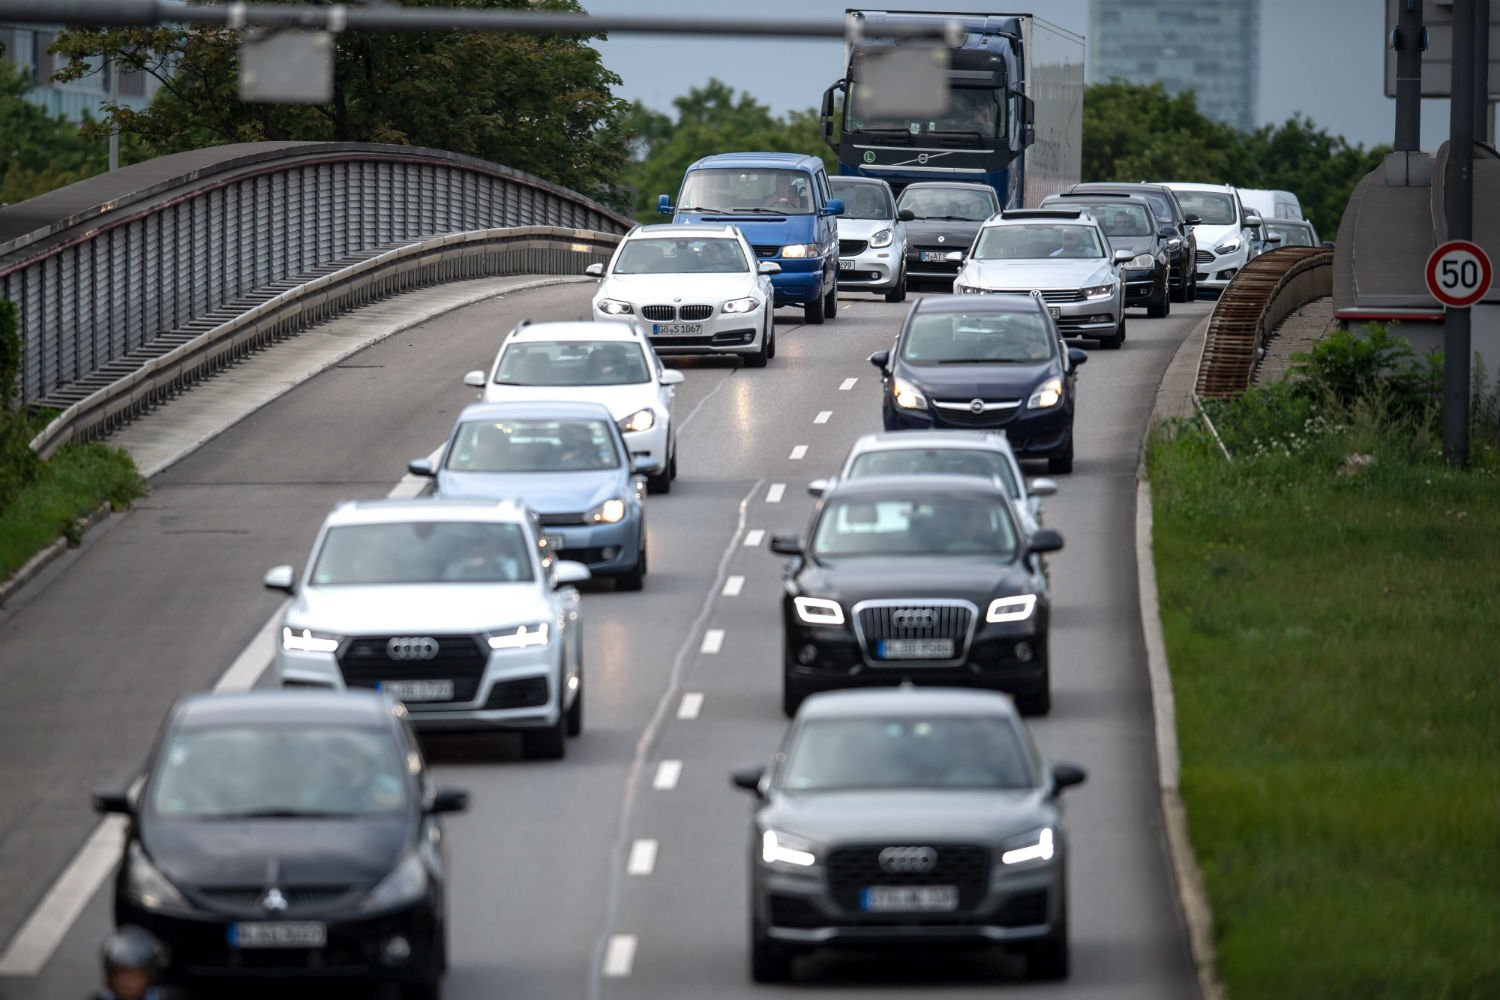 German car sales plummet as new pollution rules bite - The Local